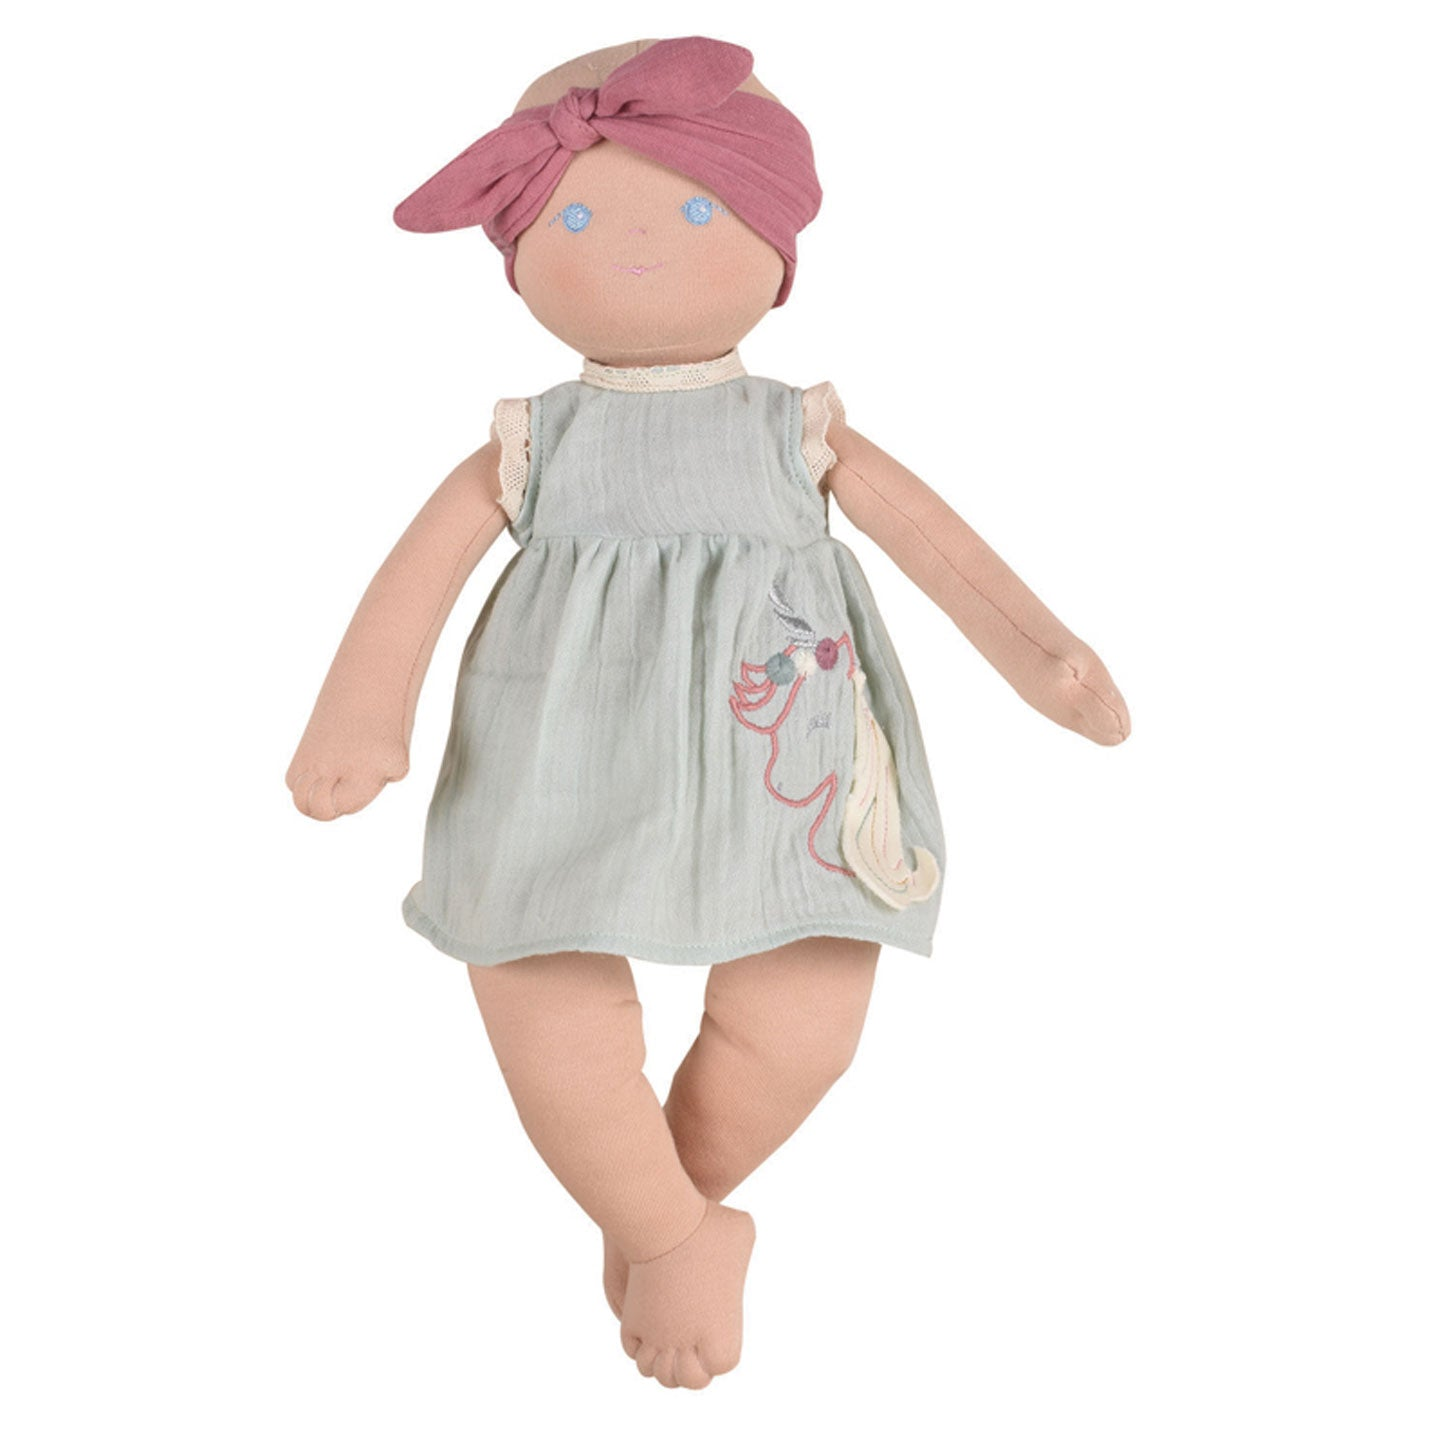 Baby Kaia and Baby Aria Organic Doll